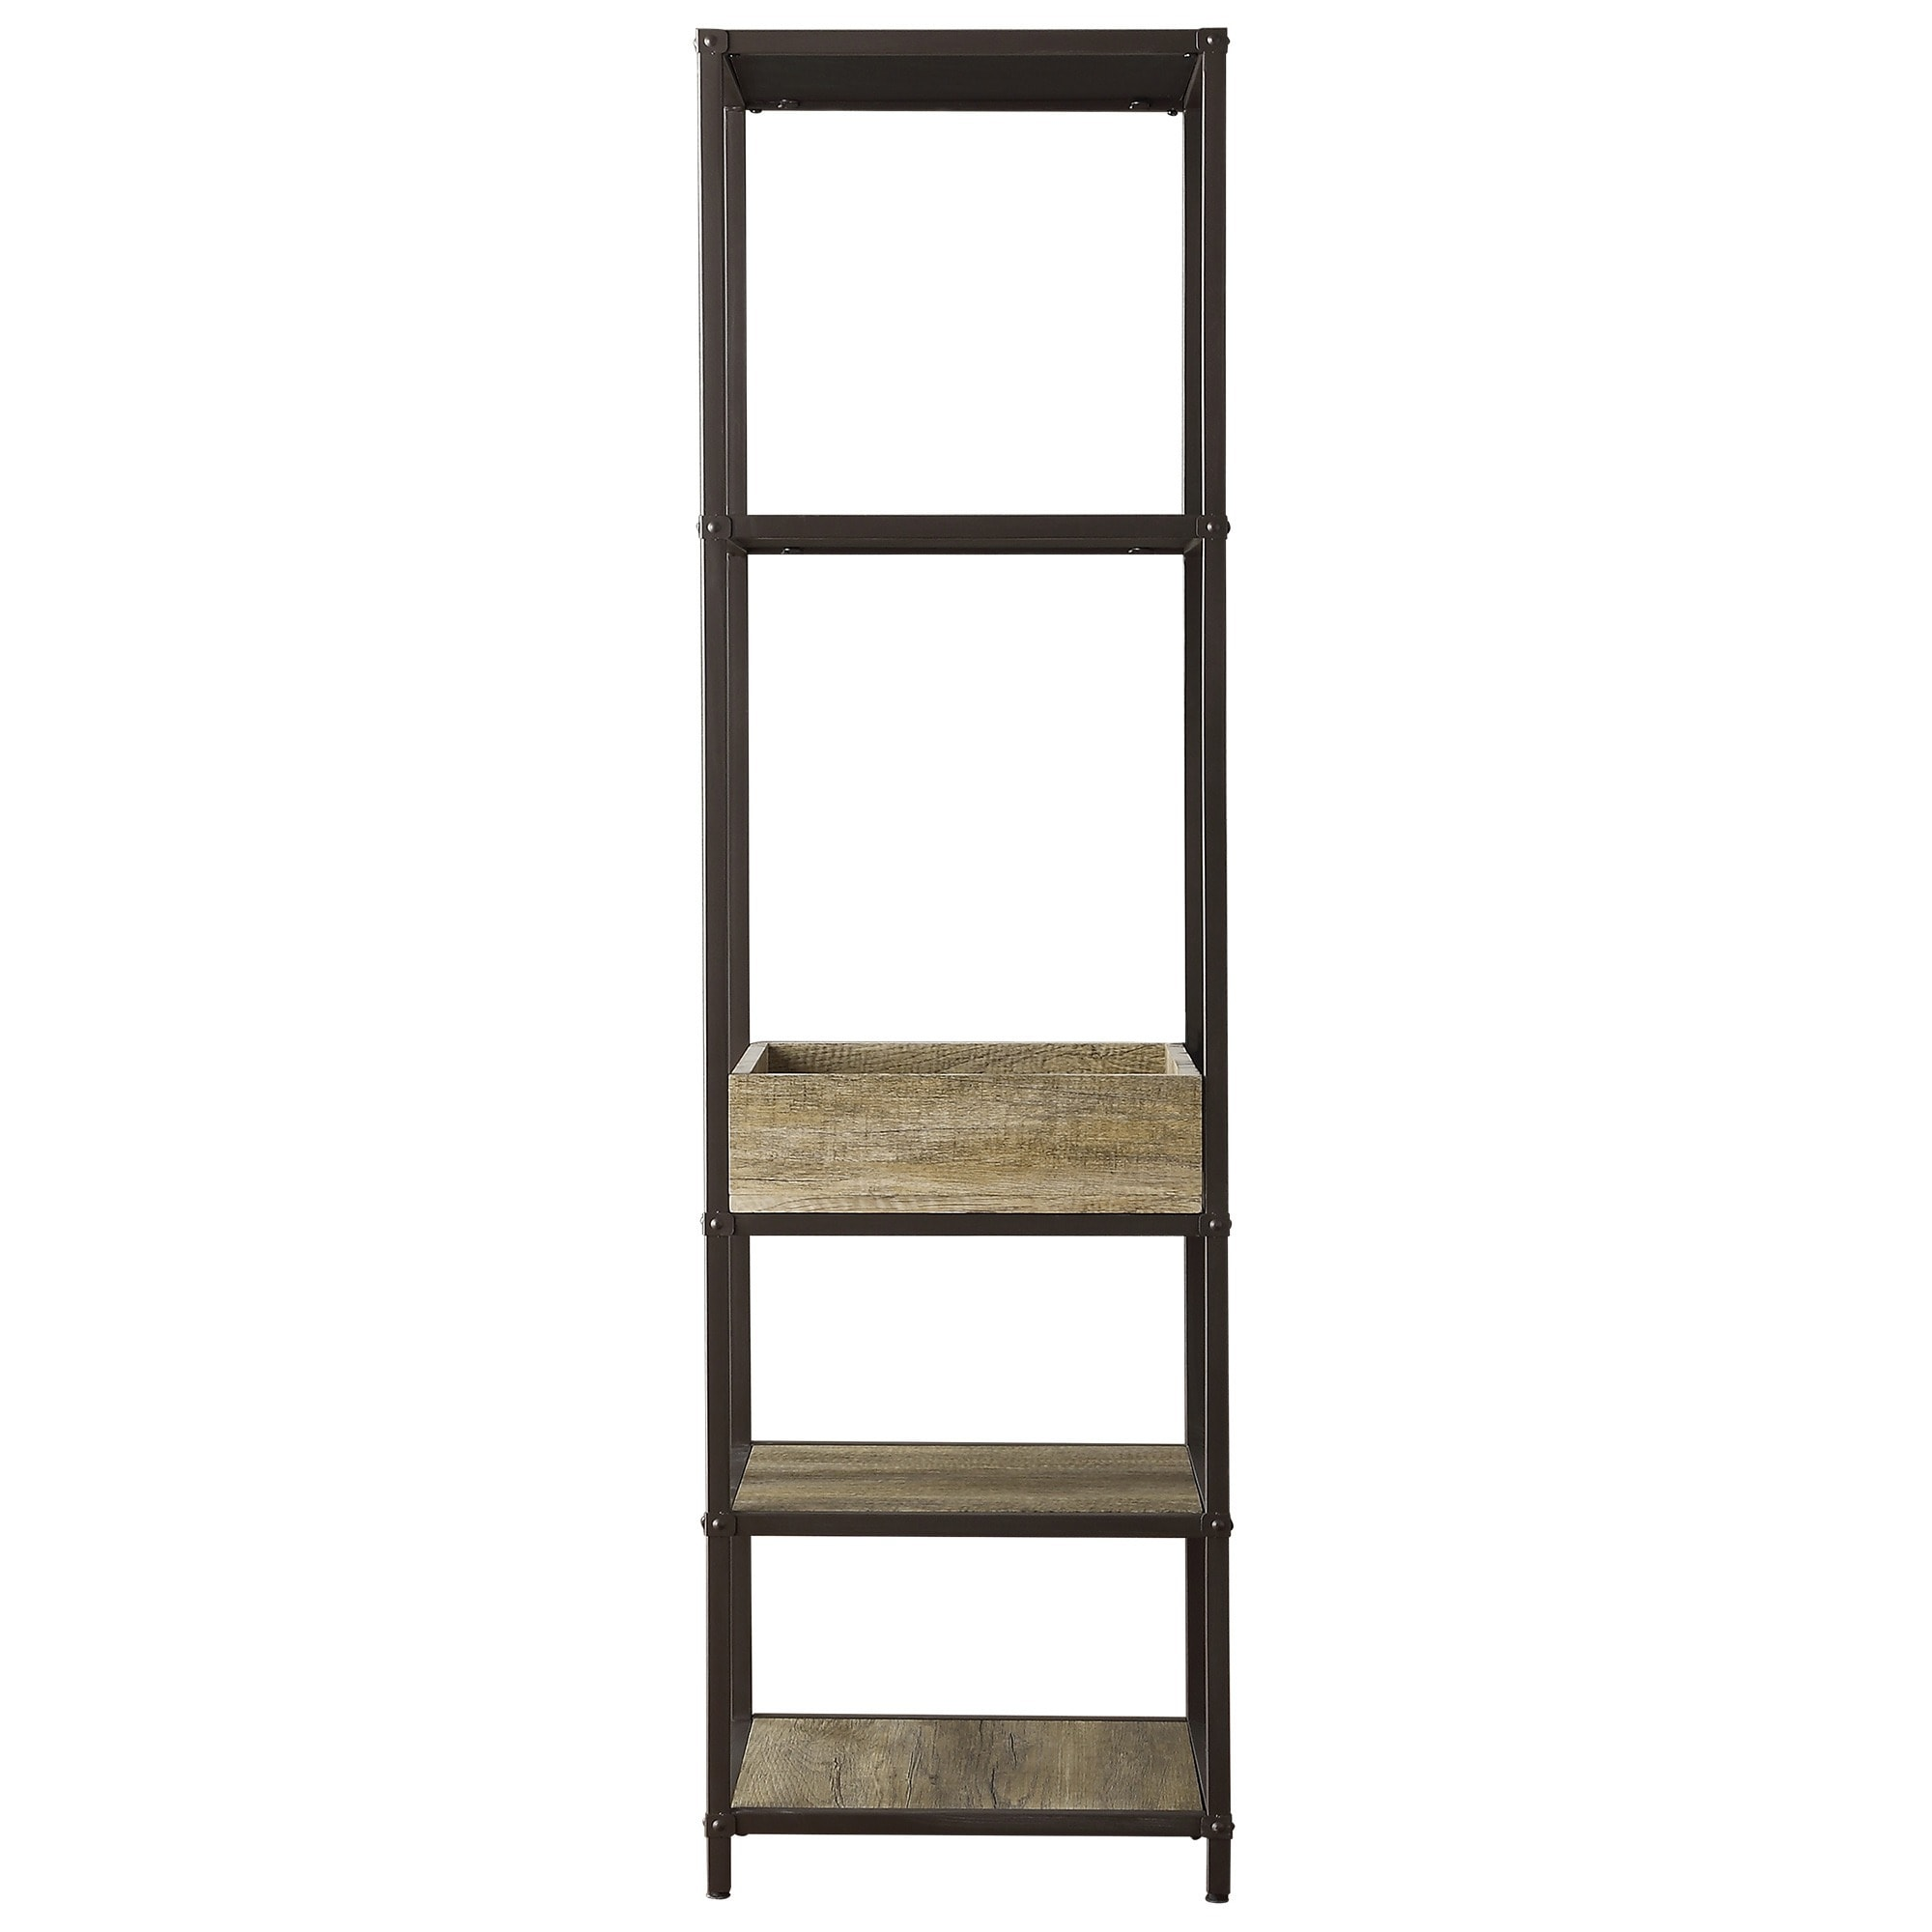 Sadie Industrial Rustic Open Crate Shelf Media Tower by iNSPIRE Q Classic -  Free Shipping Today - Overstock.com - 17106563